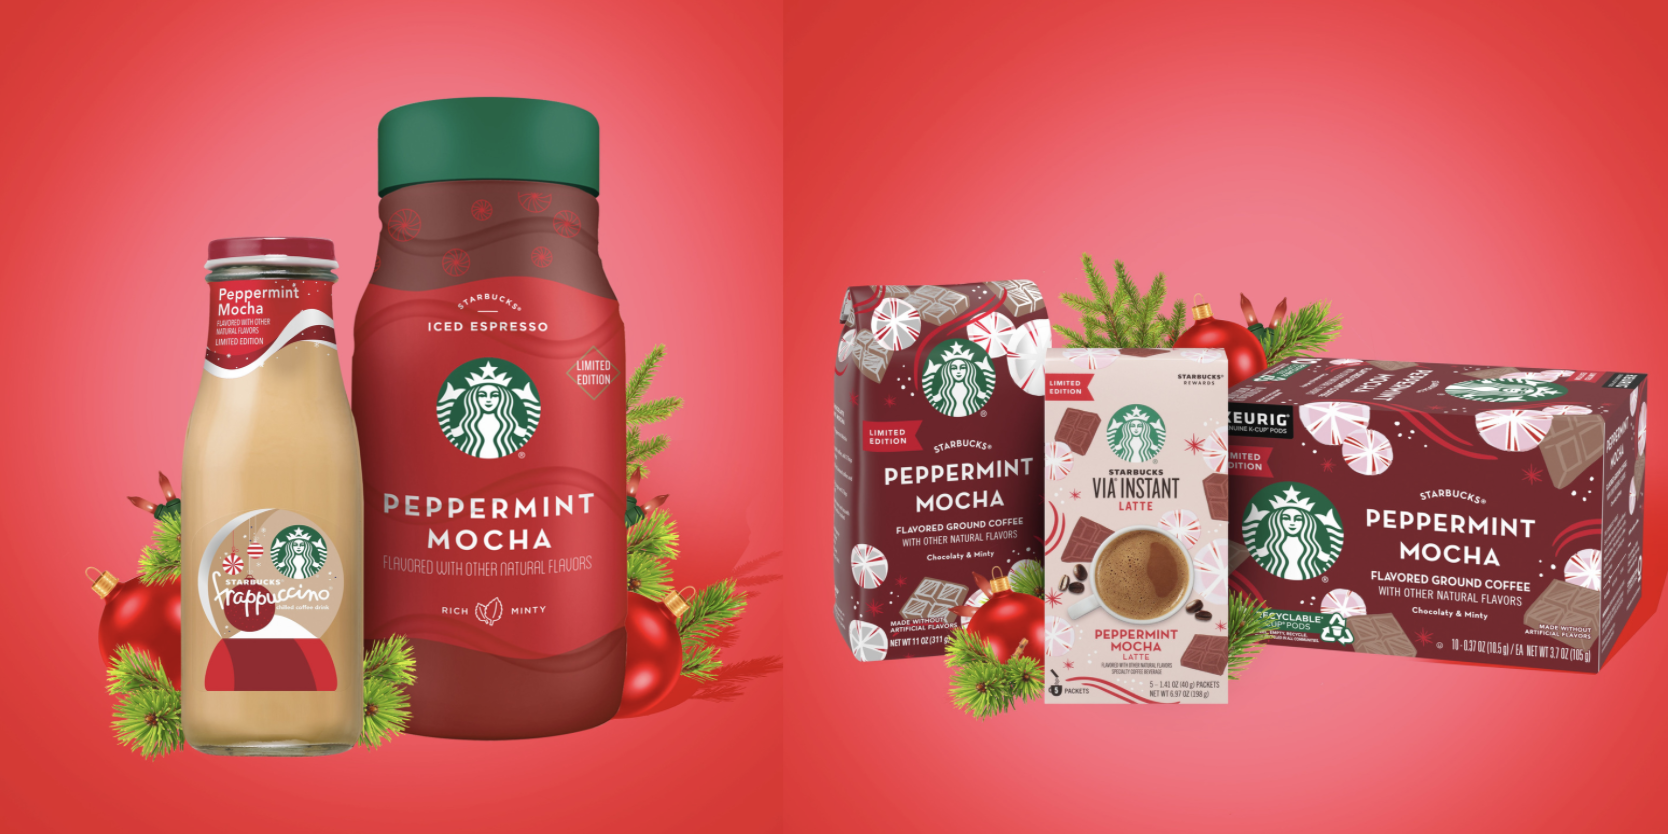 Starbucks Christmas Flavored Kcups 2020 The Starbucks Holiday Line Is Hitting Grocery Stores Soon